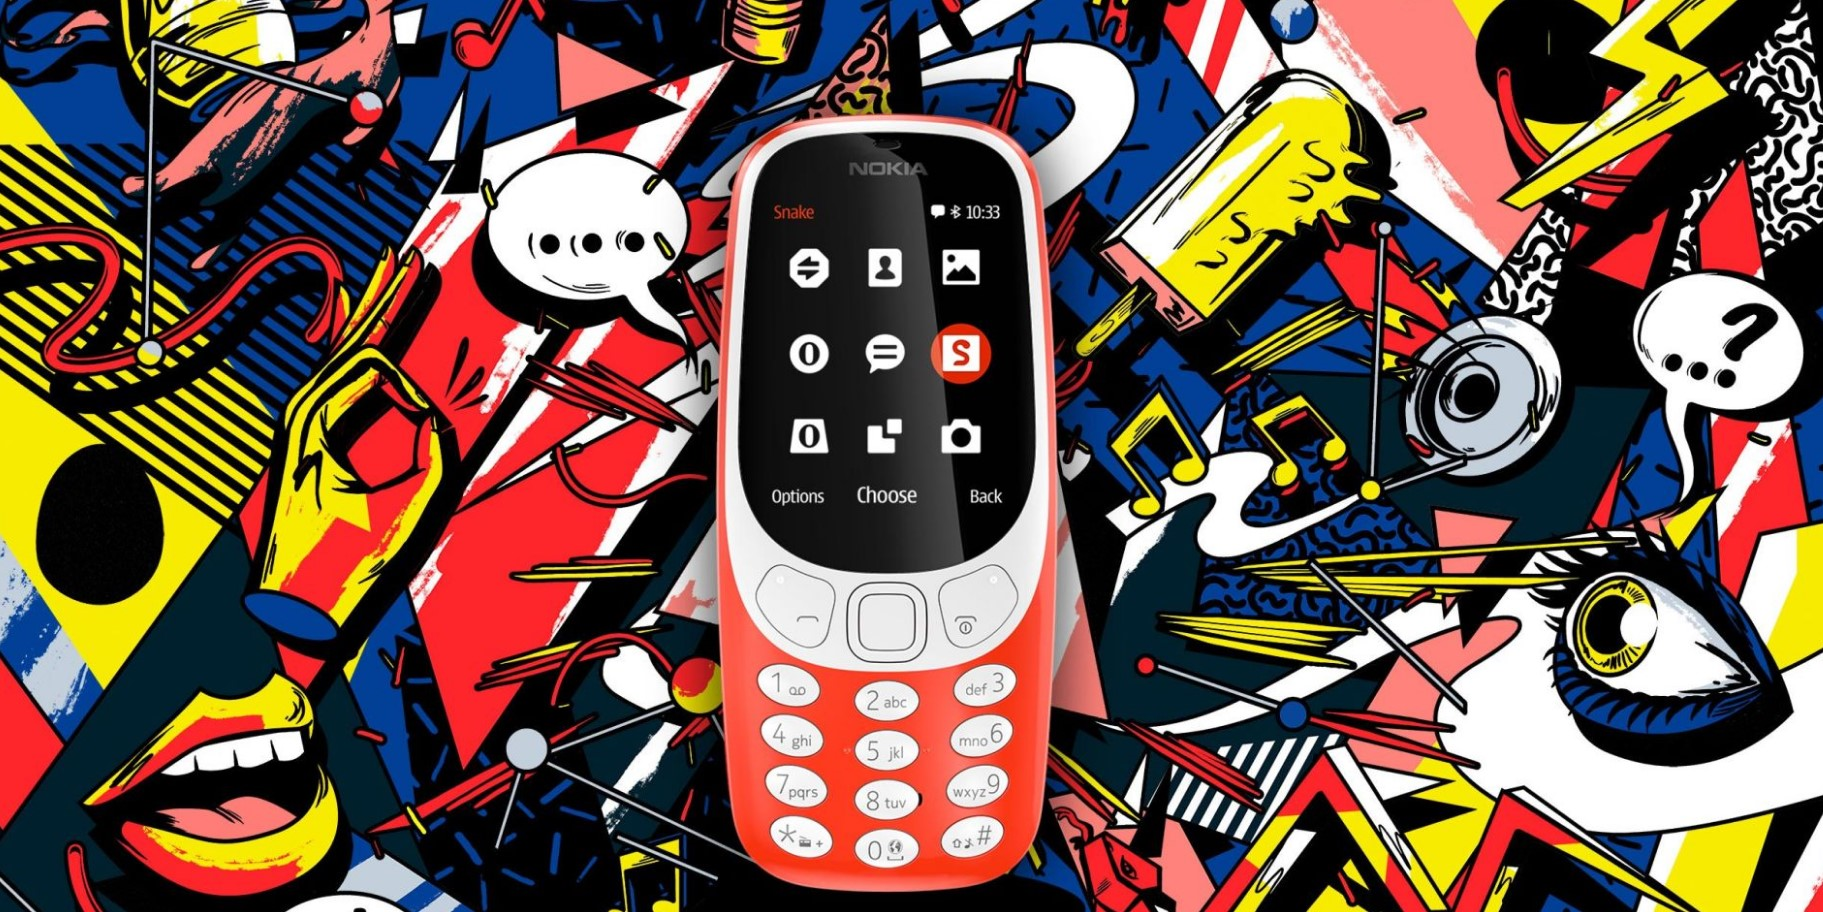 Nokia is Back. Nokia 3,5,6 and Nokia 3310 Reviewed